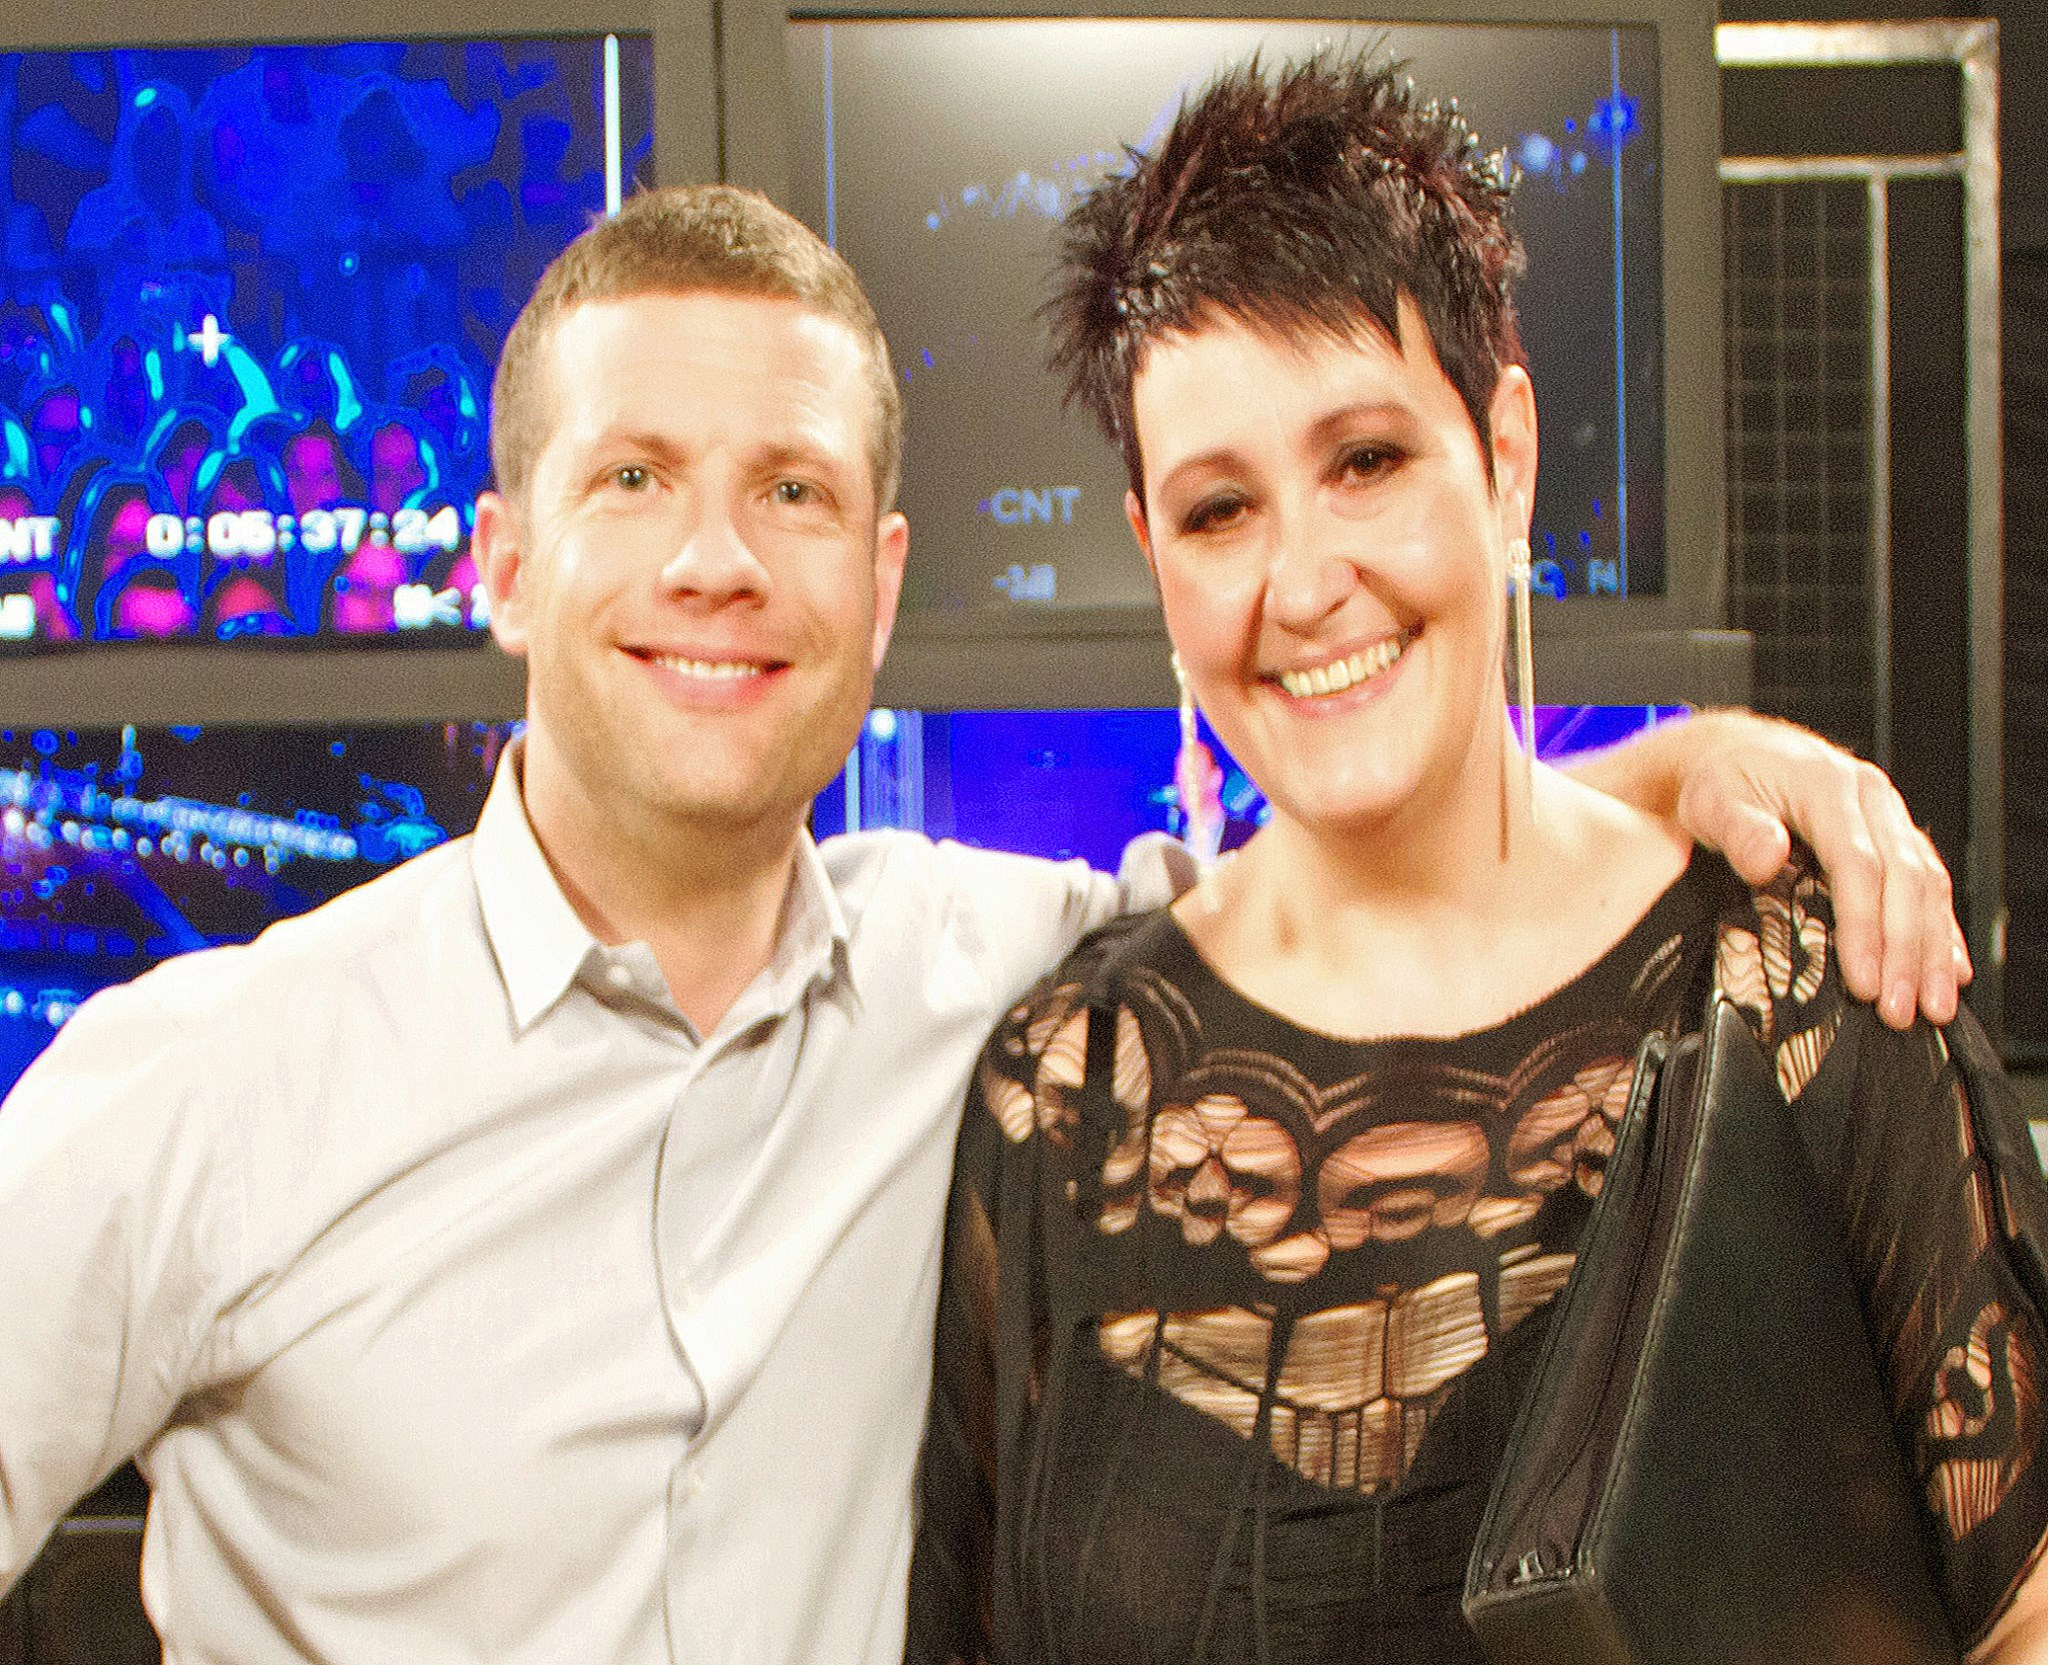 Sian Pearce Gordon meets Dermott O' Leary